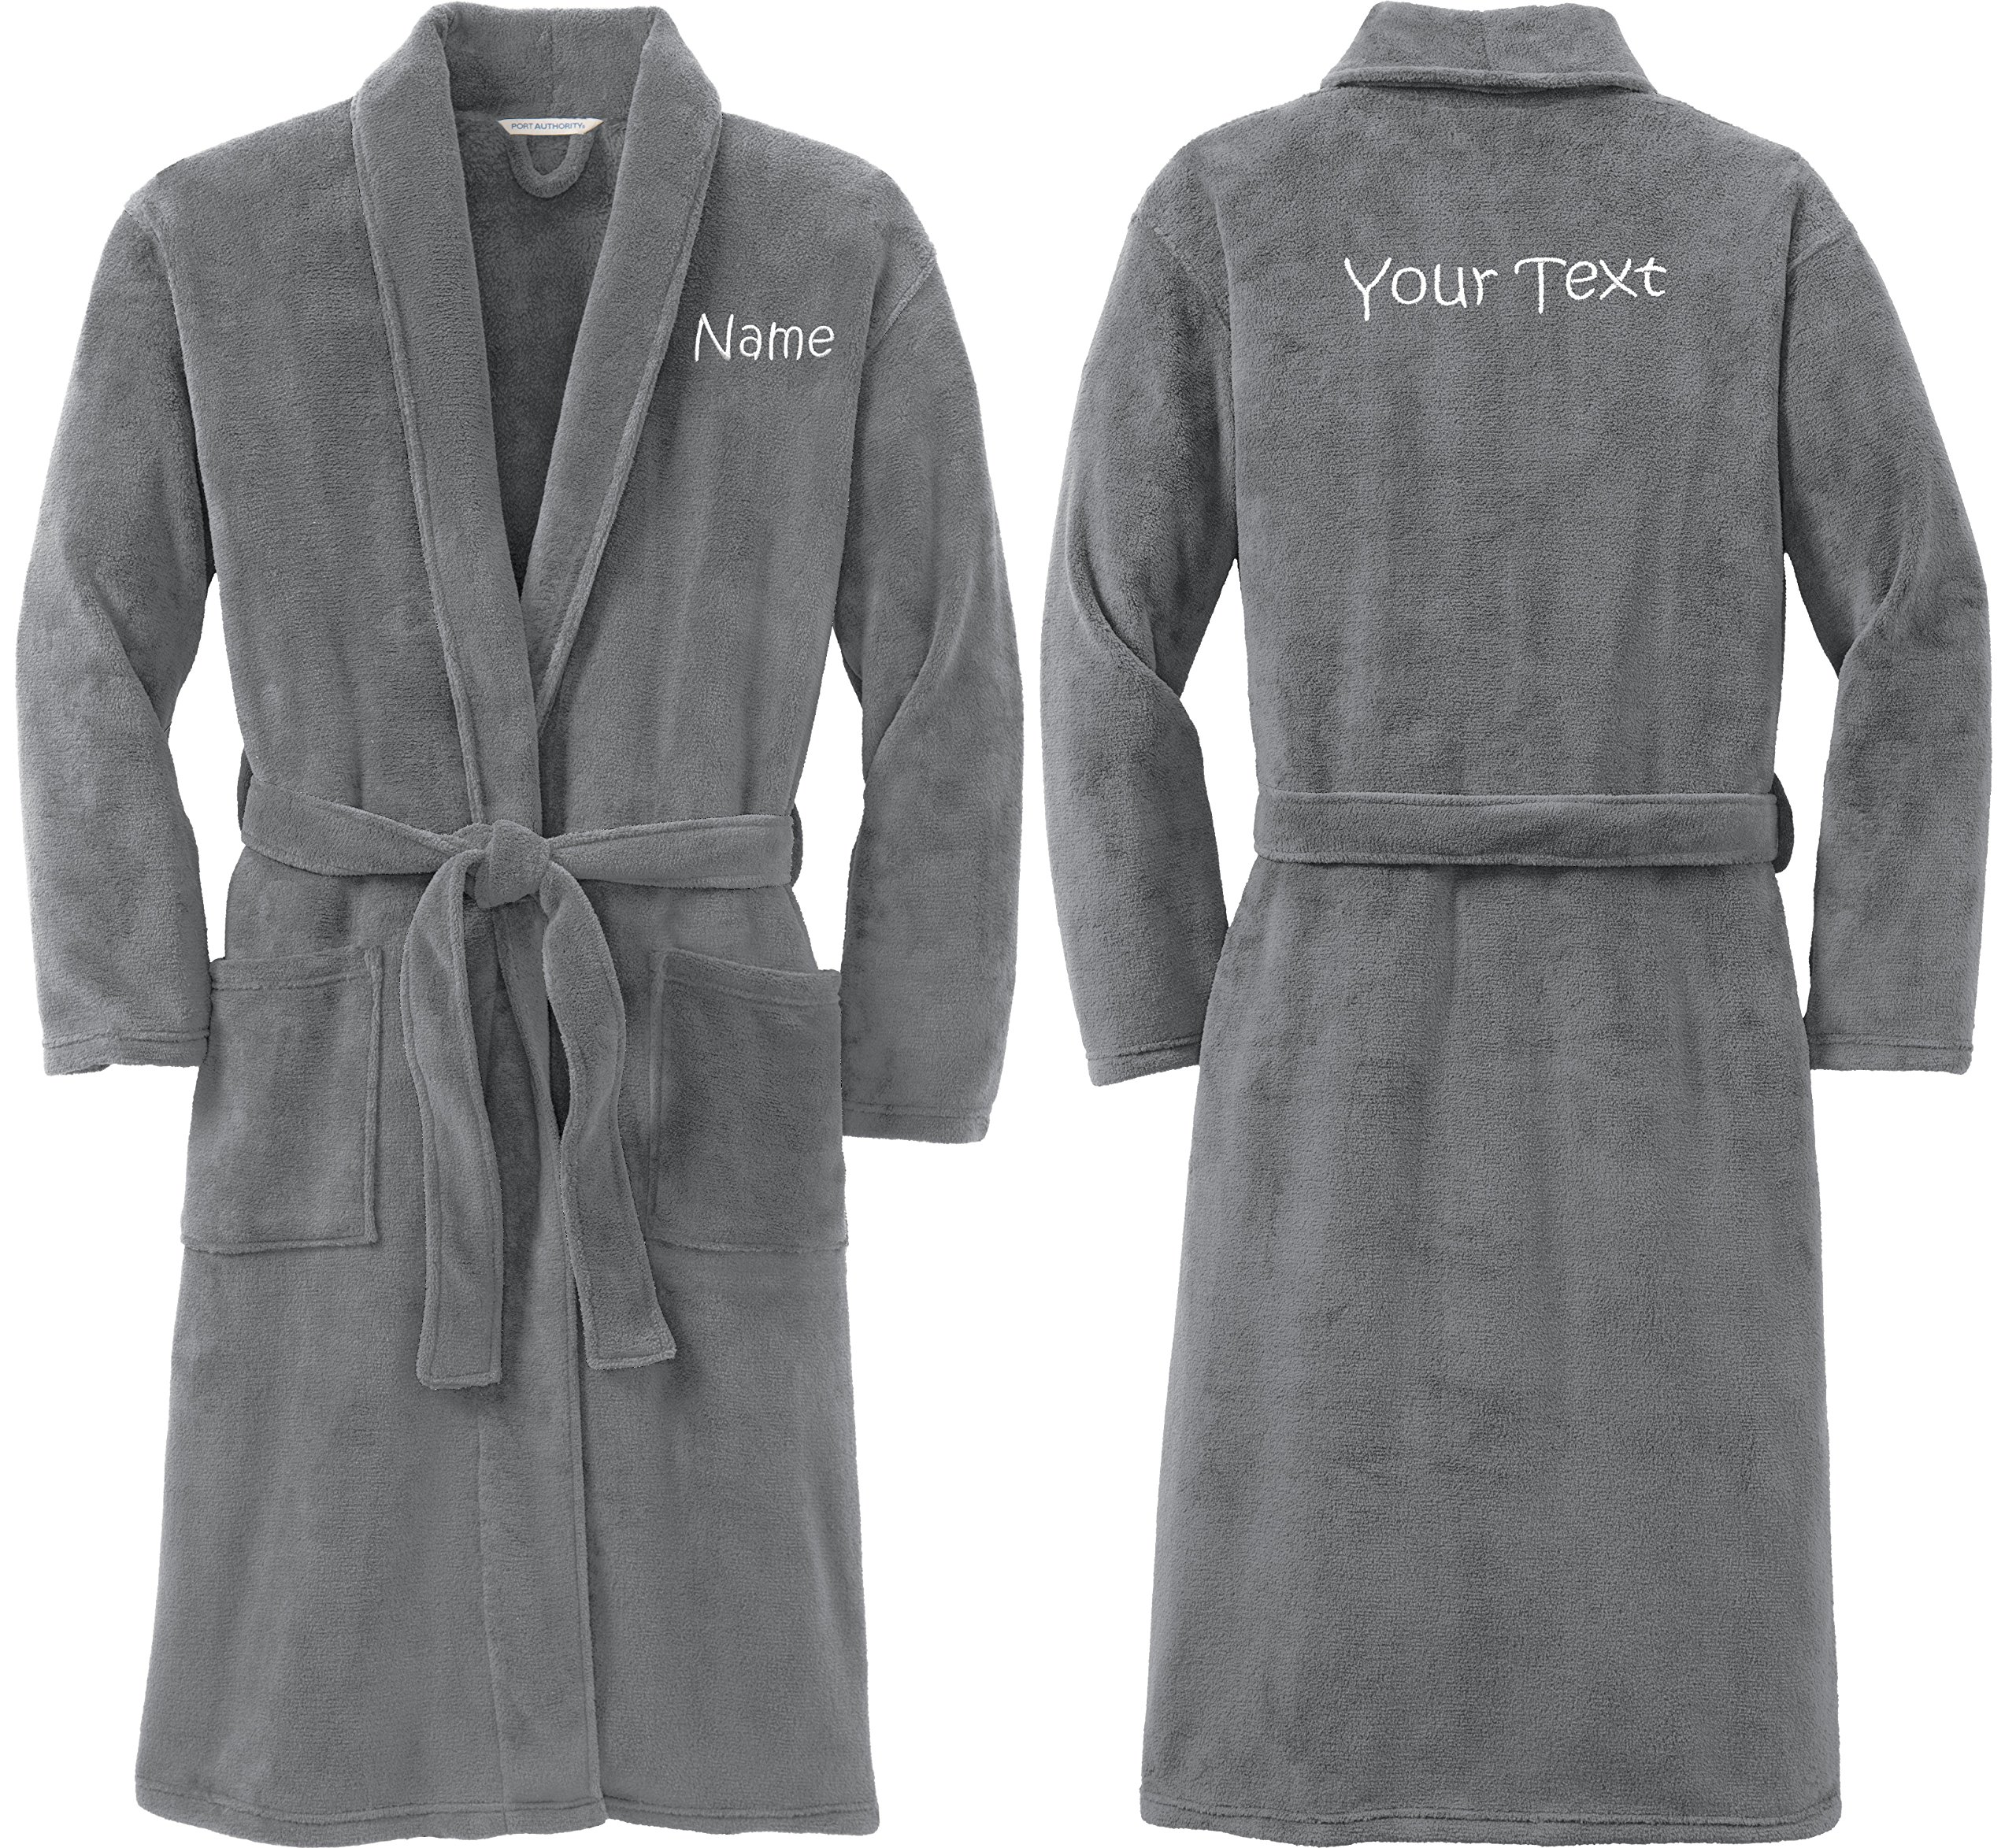 Personalized Plush Microfleece Robe with Embroidered Name & Back, Smoke, Small/Medium